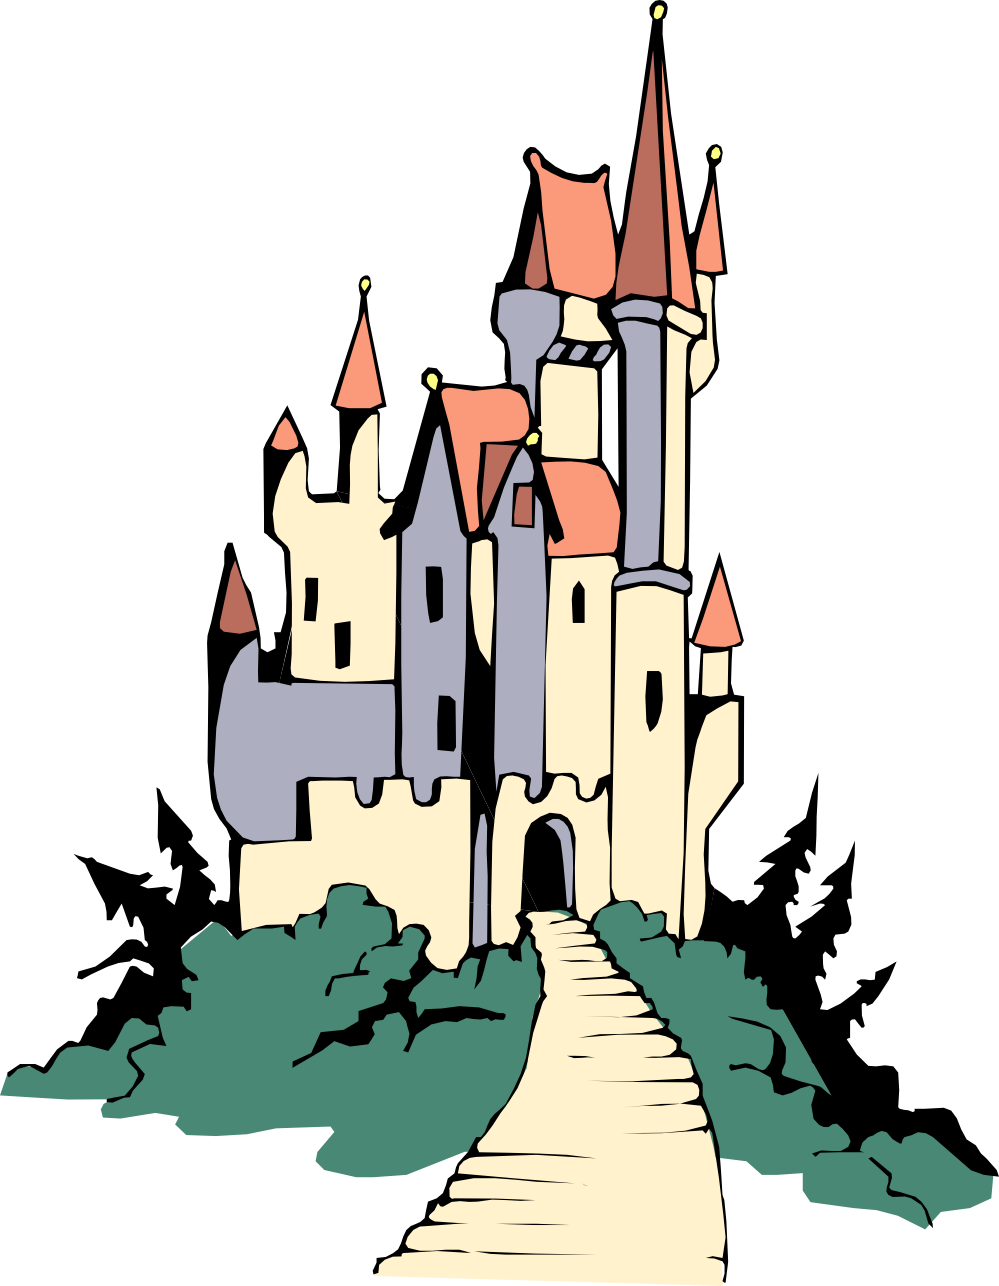 Palace clipart beautiful castle. Cinderella sleeping beauty clip